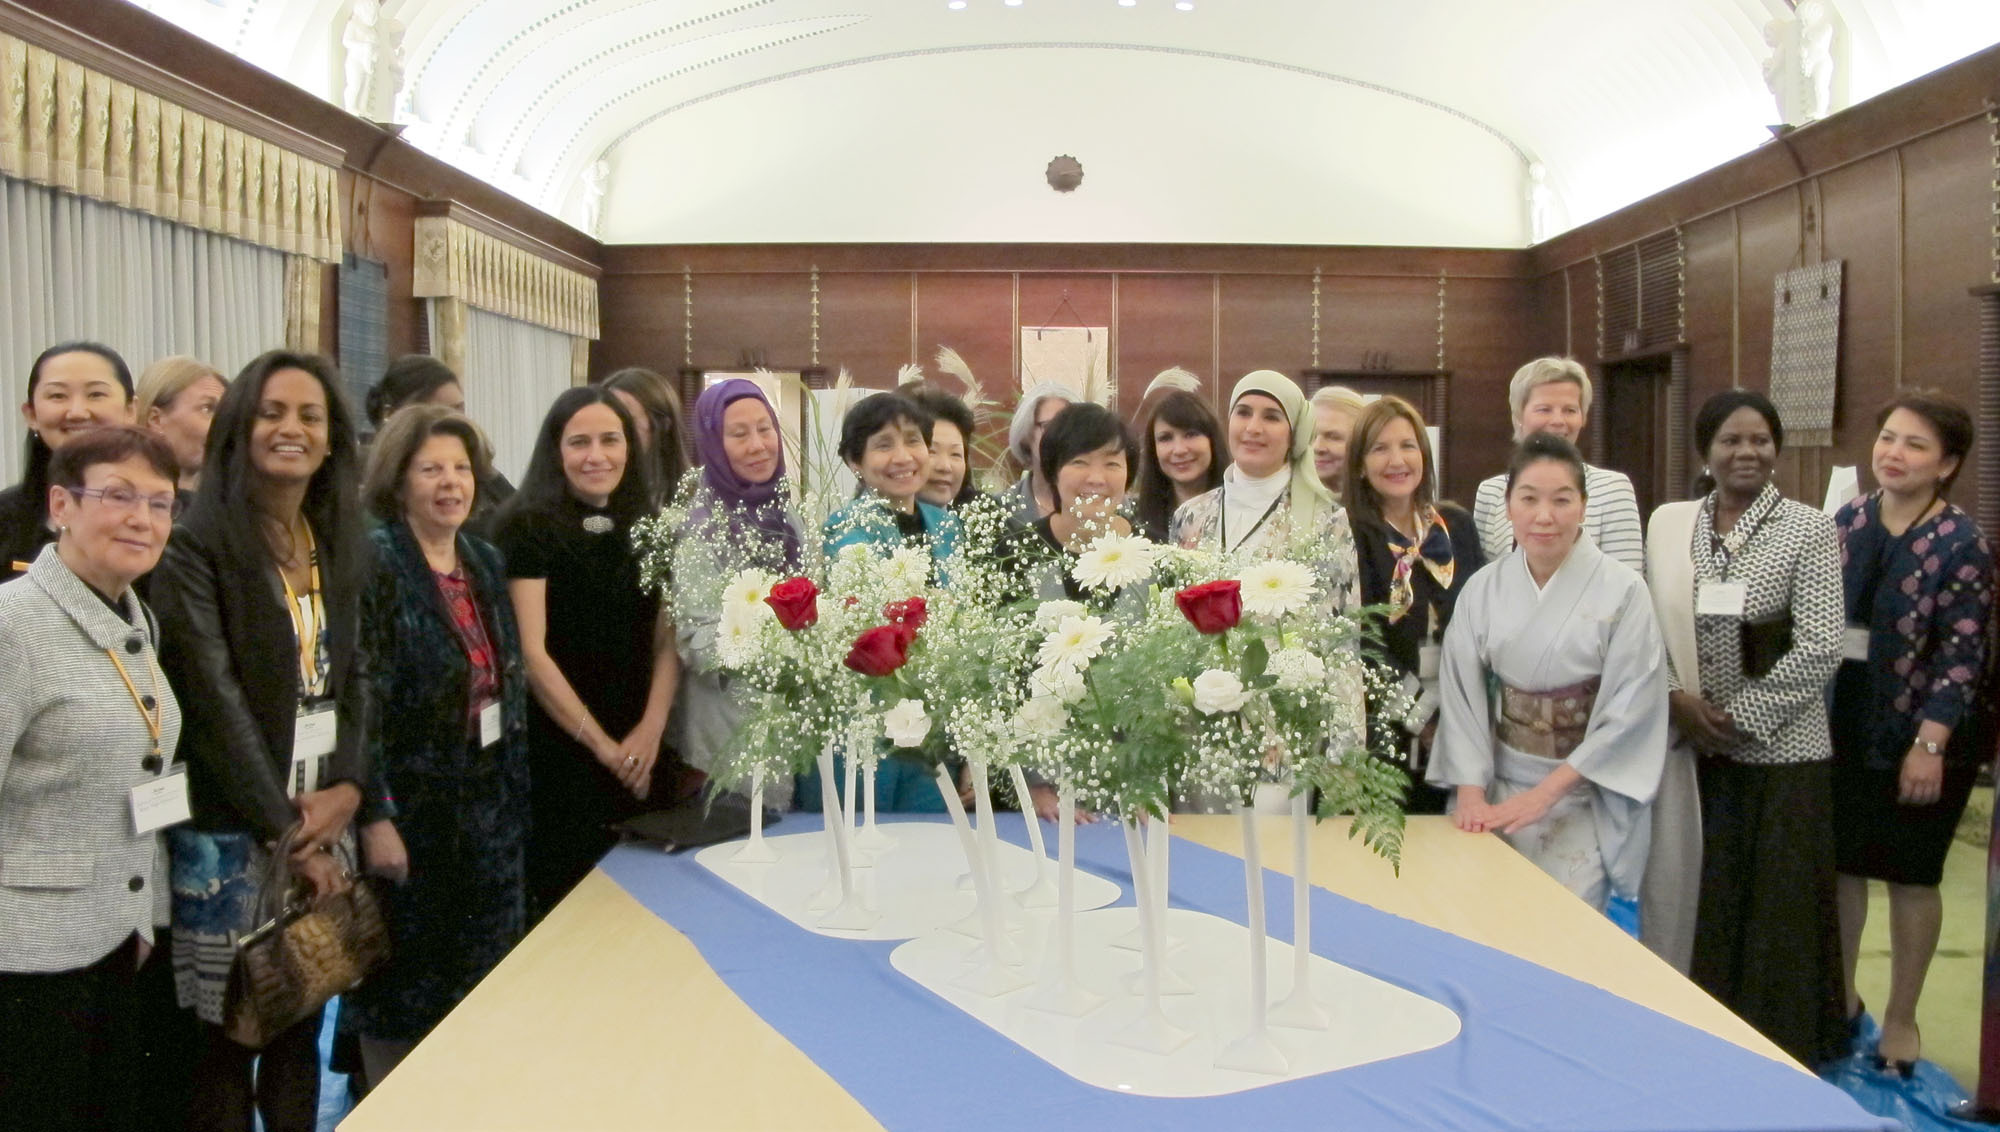 First lady Akie Abe is joined by ambassadors and ambassadors' spouses from 23 countries at an Ikebana International event that aims to promote international friendship through flowers at the prime minister's official residence on Nov. 9. | IKEBANA INTERNATIONAL